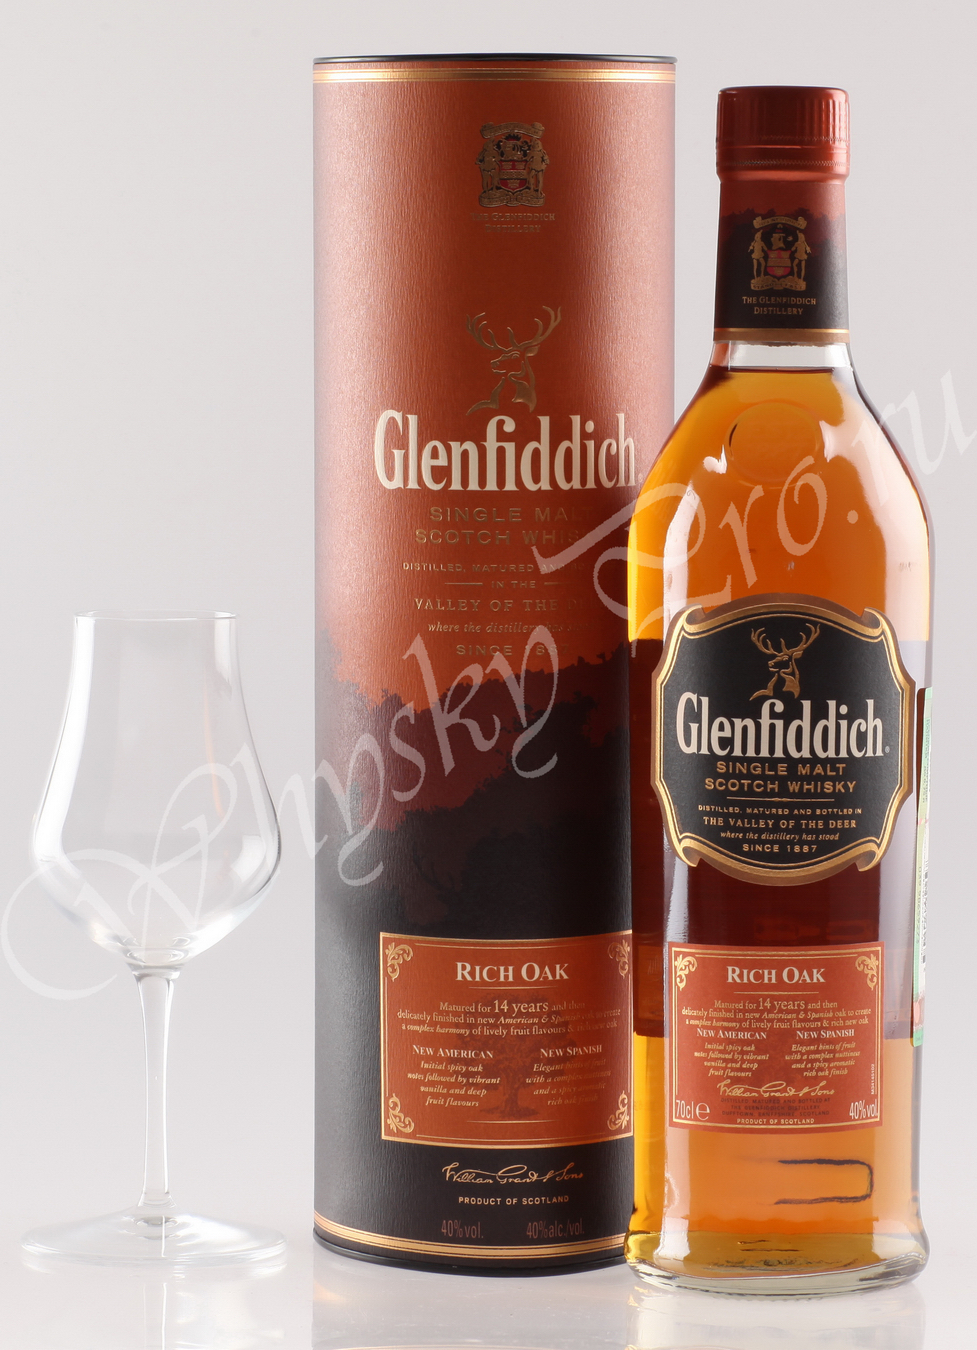 виски Гленфиддик 14 год Рич Оак Шотландский виски Glenfiddich 14 years old Rich Oak